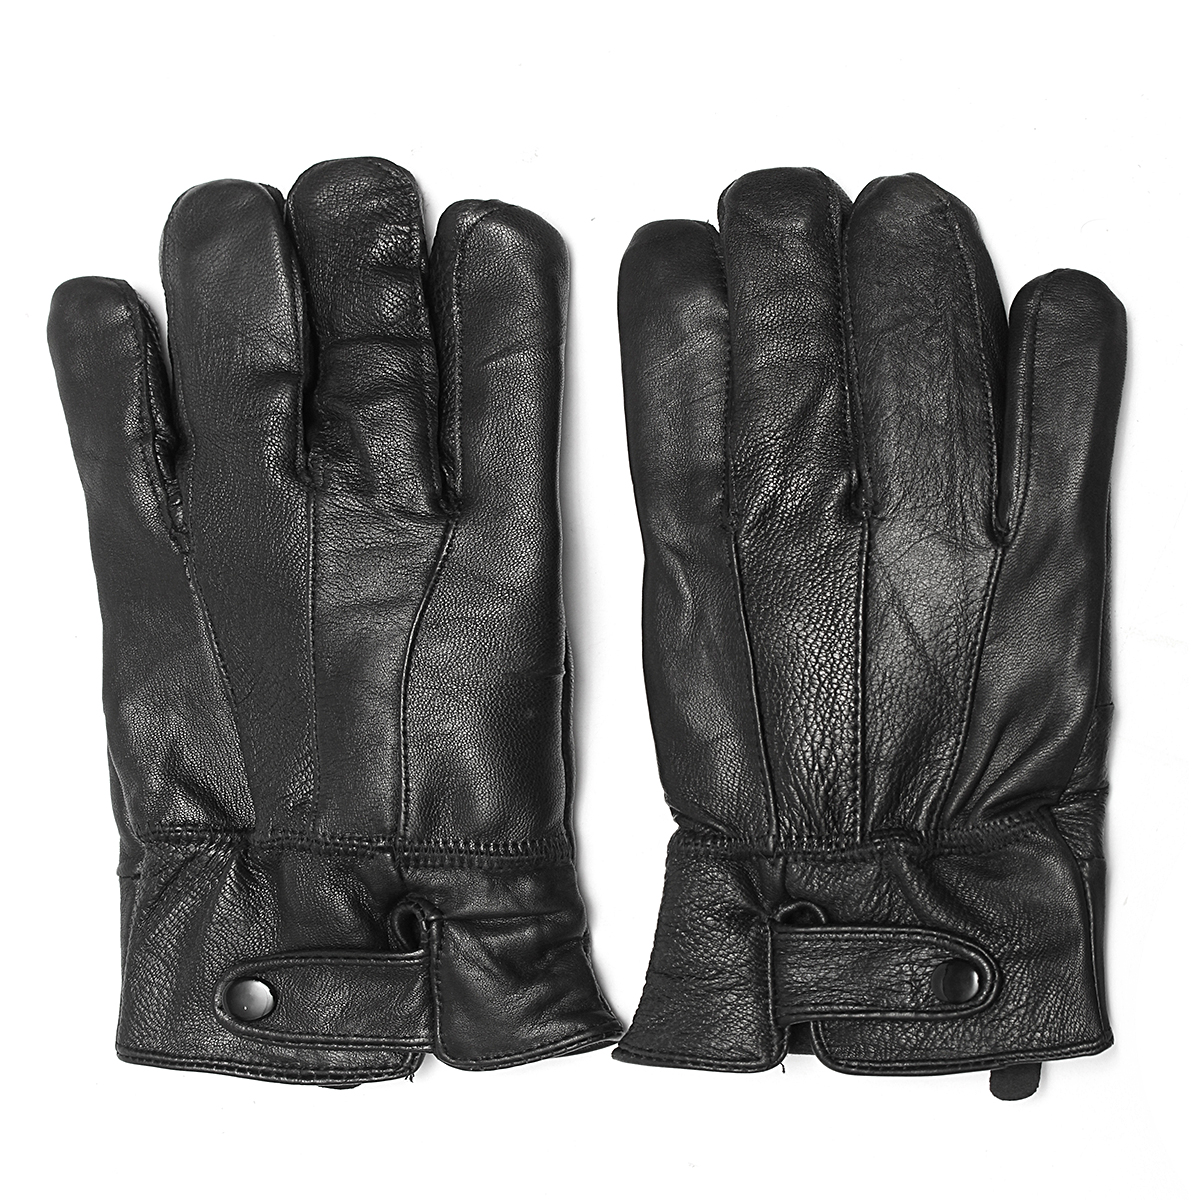 Touch Screen Leather Gloves Thermal Lined Driving Winter Motorcycle